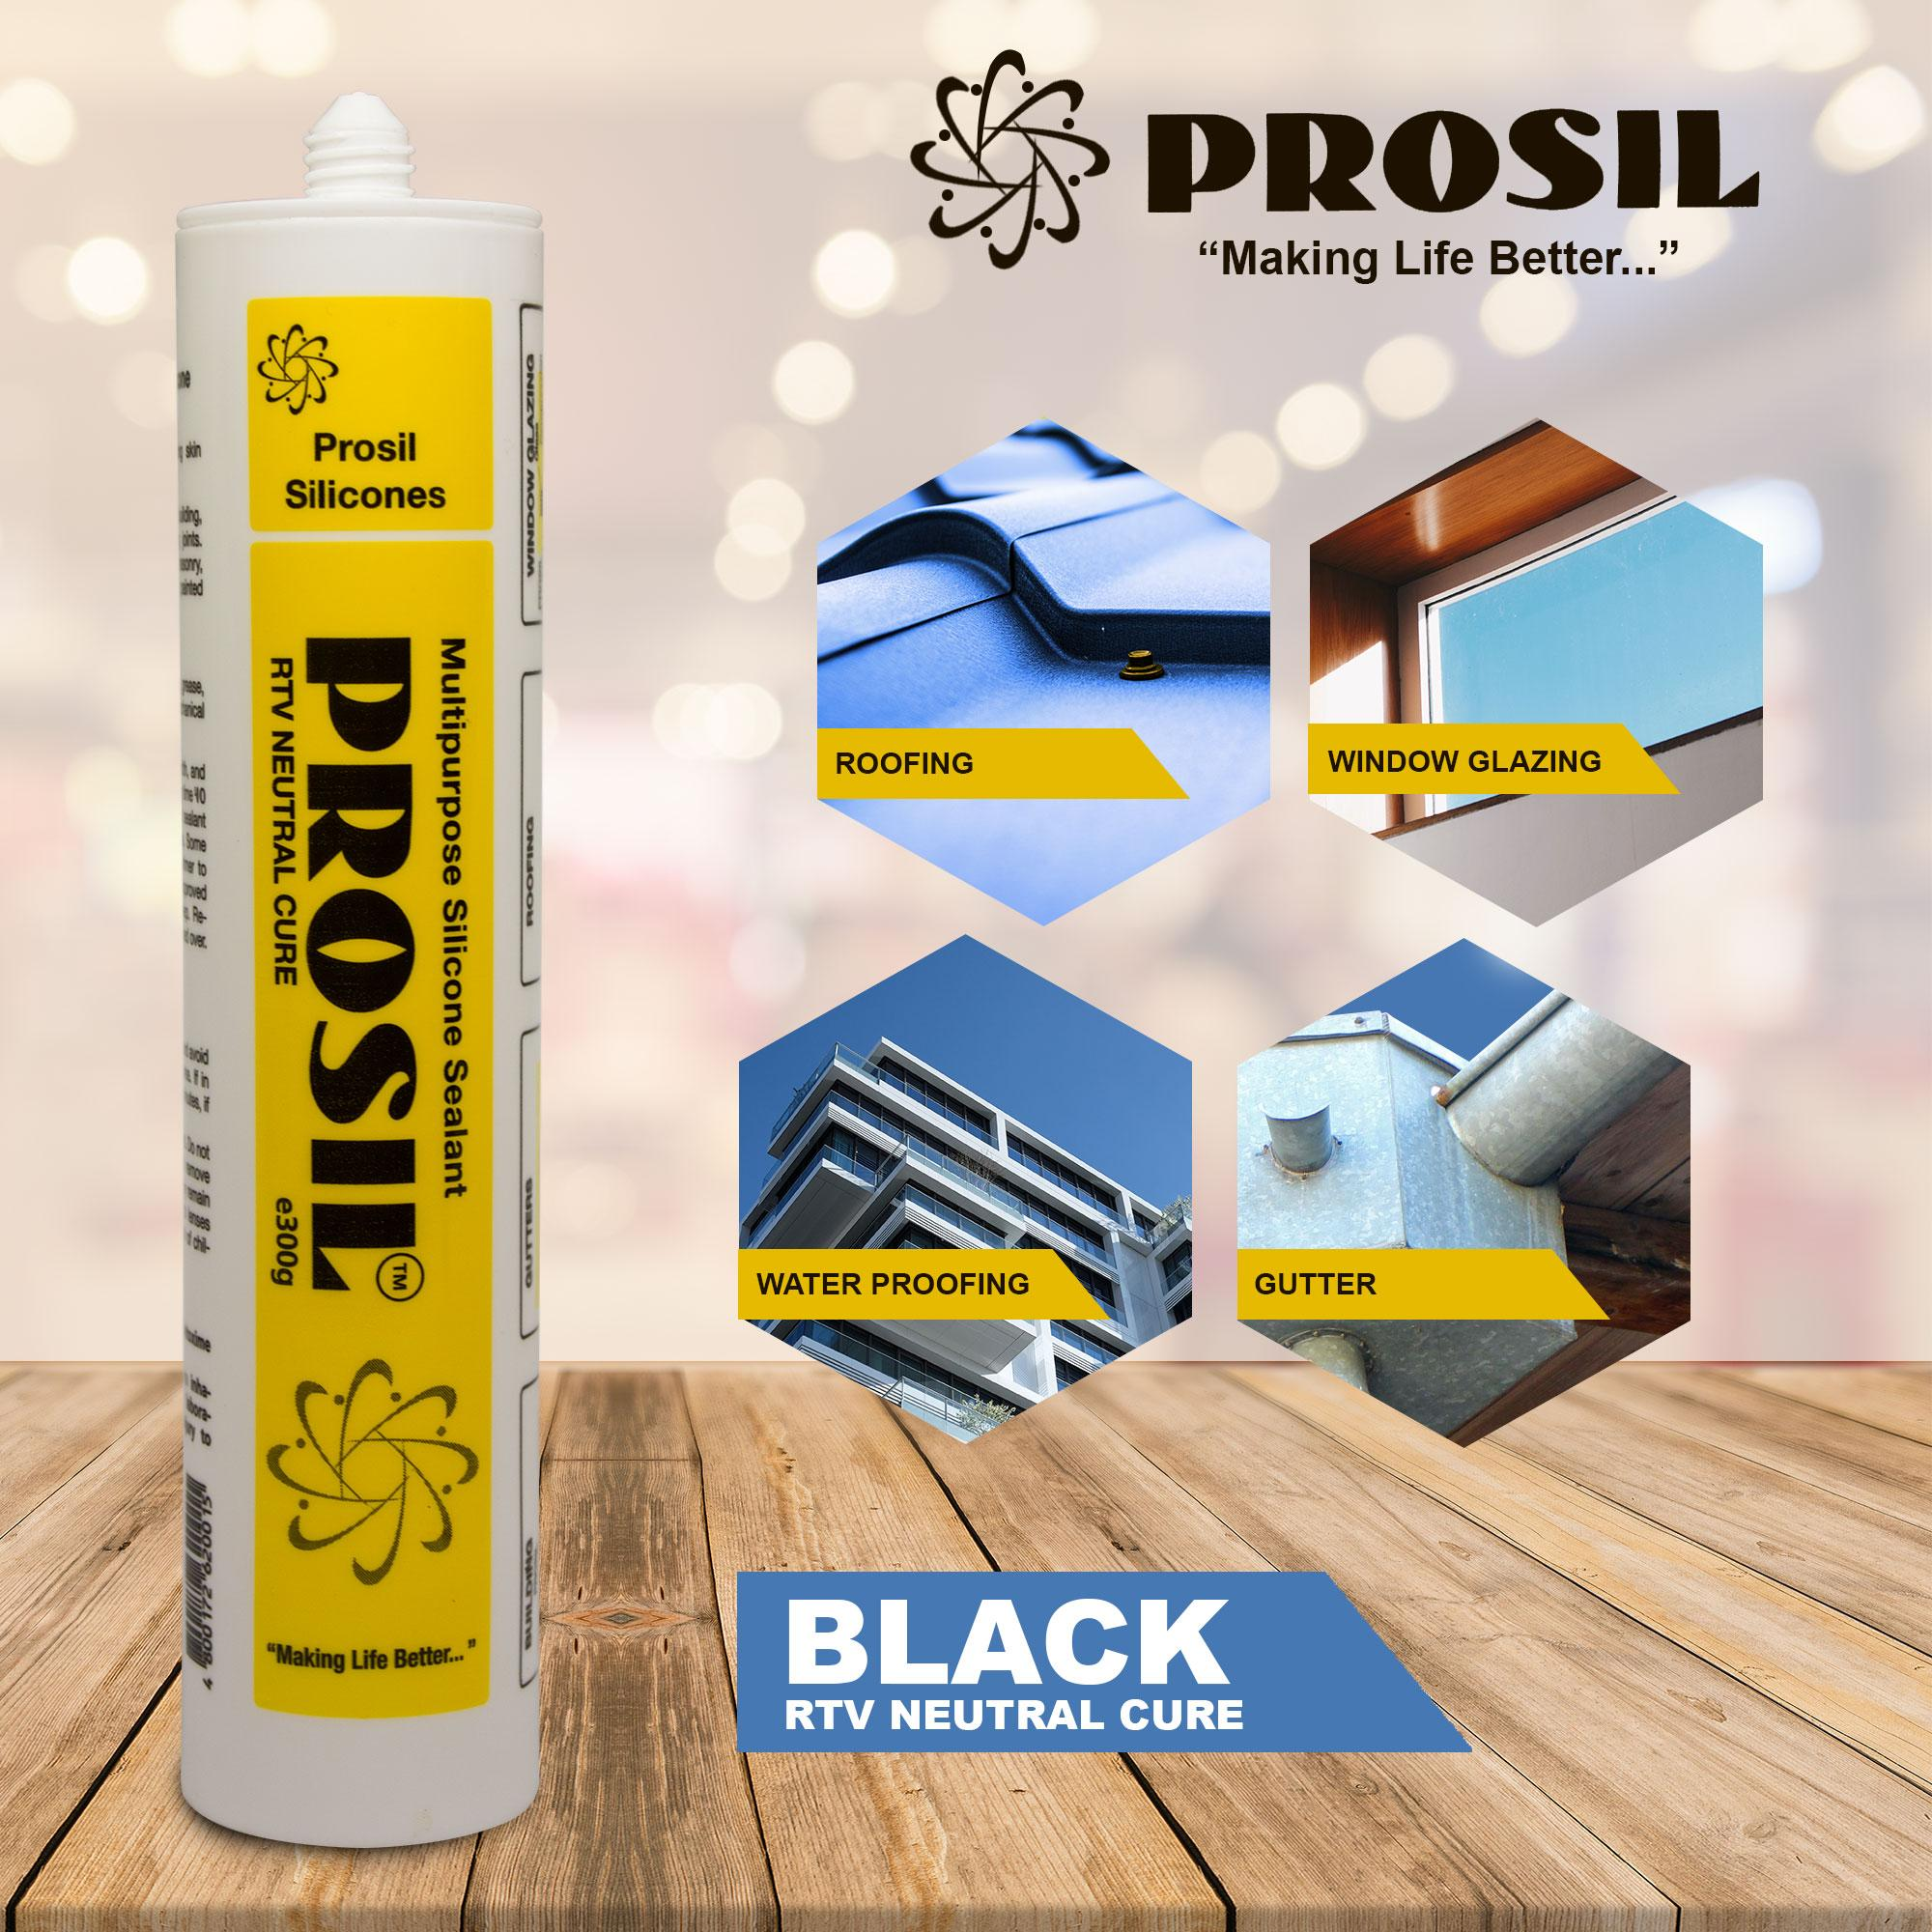 Multipurpose Silicone Sealant Prosil (black, clear, white bronze)